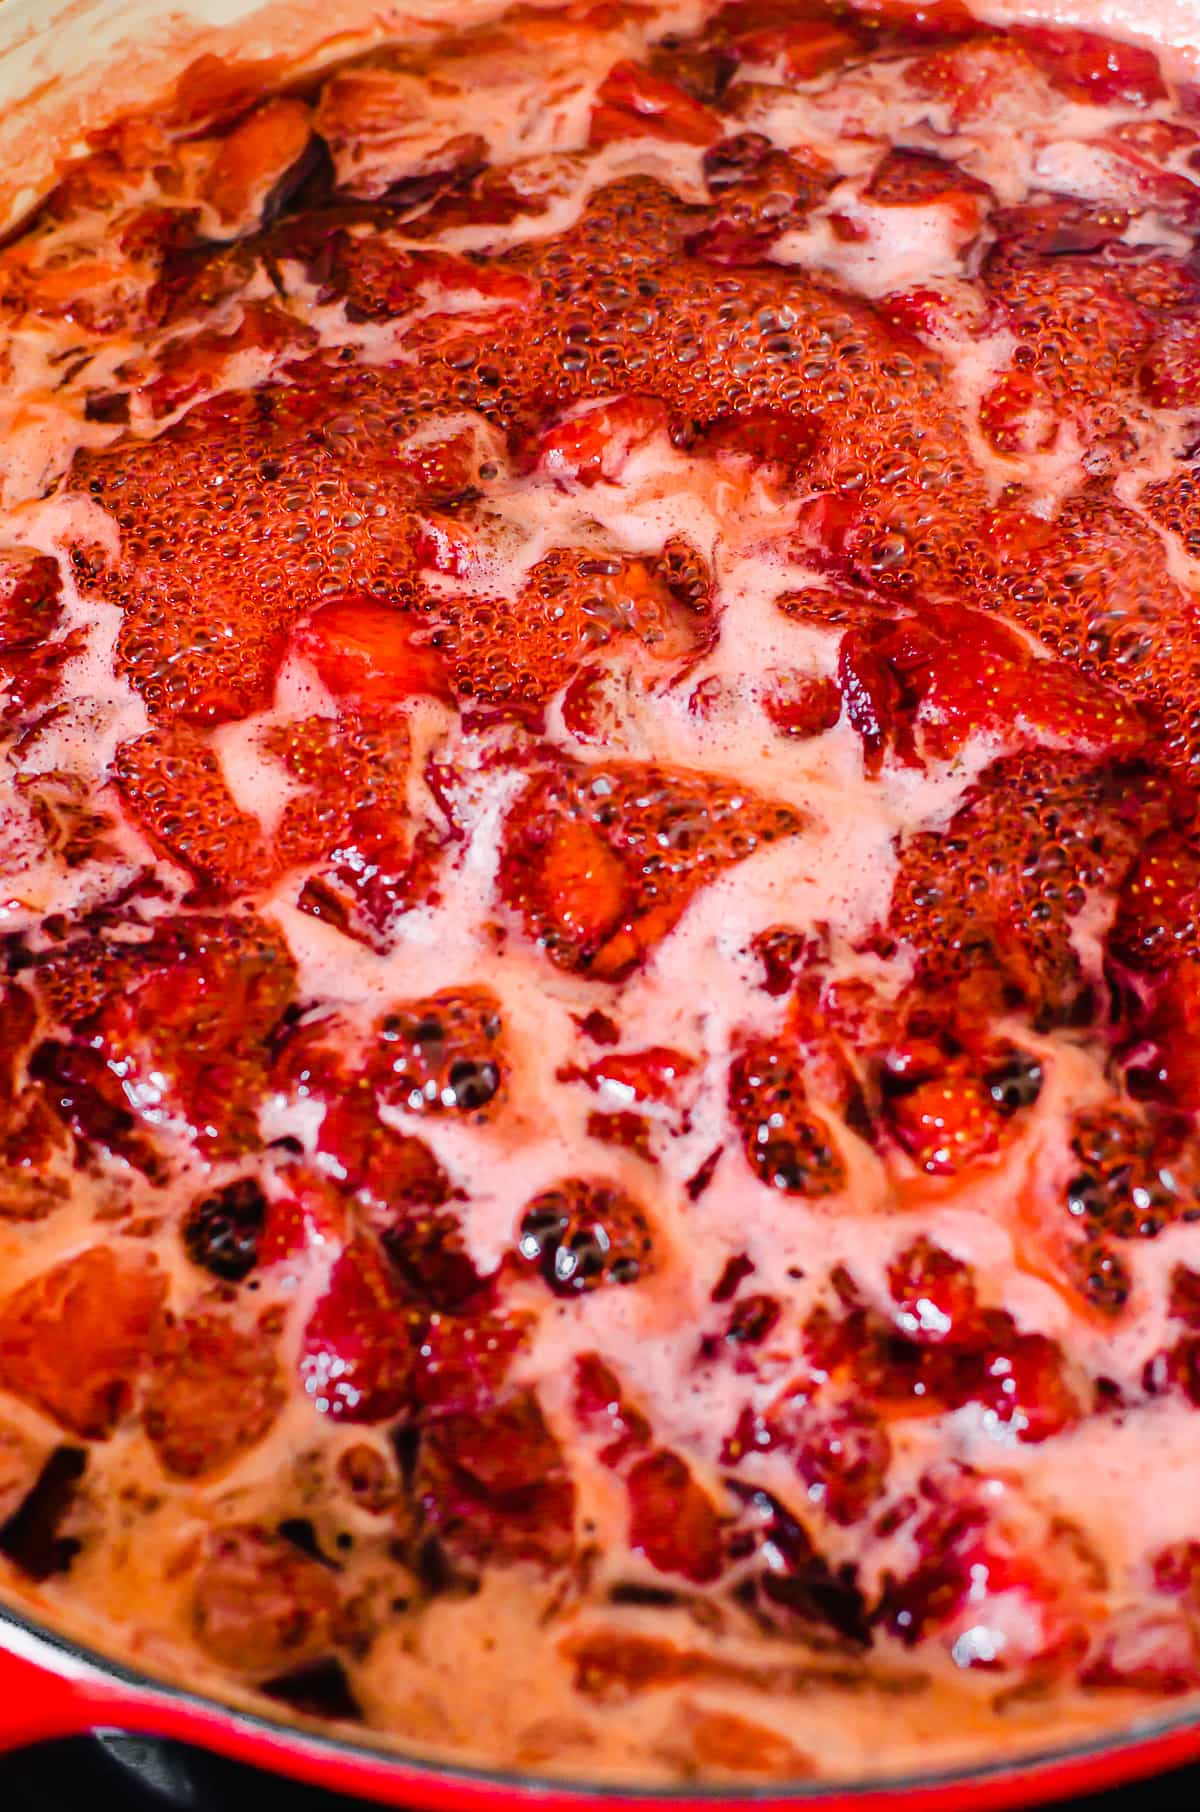 Foam forming on top of a pot of simmering strawberry jam.